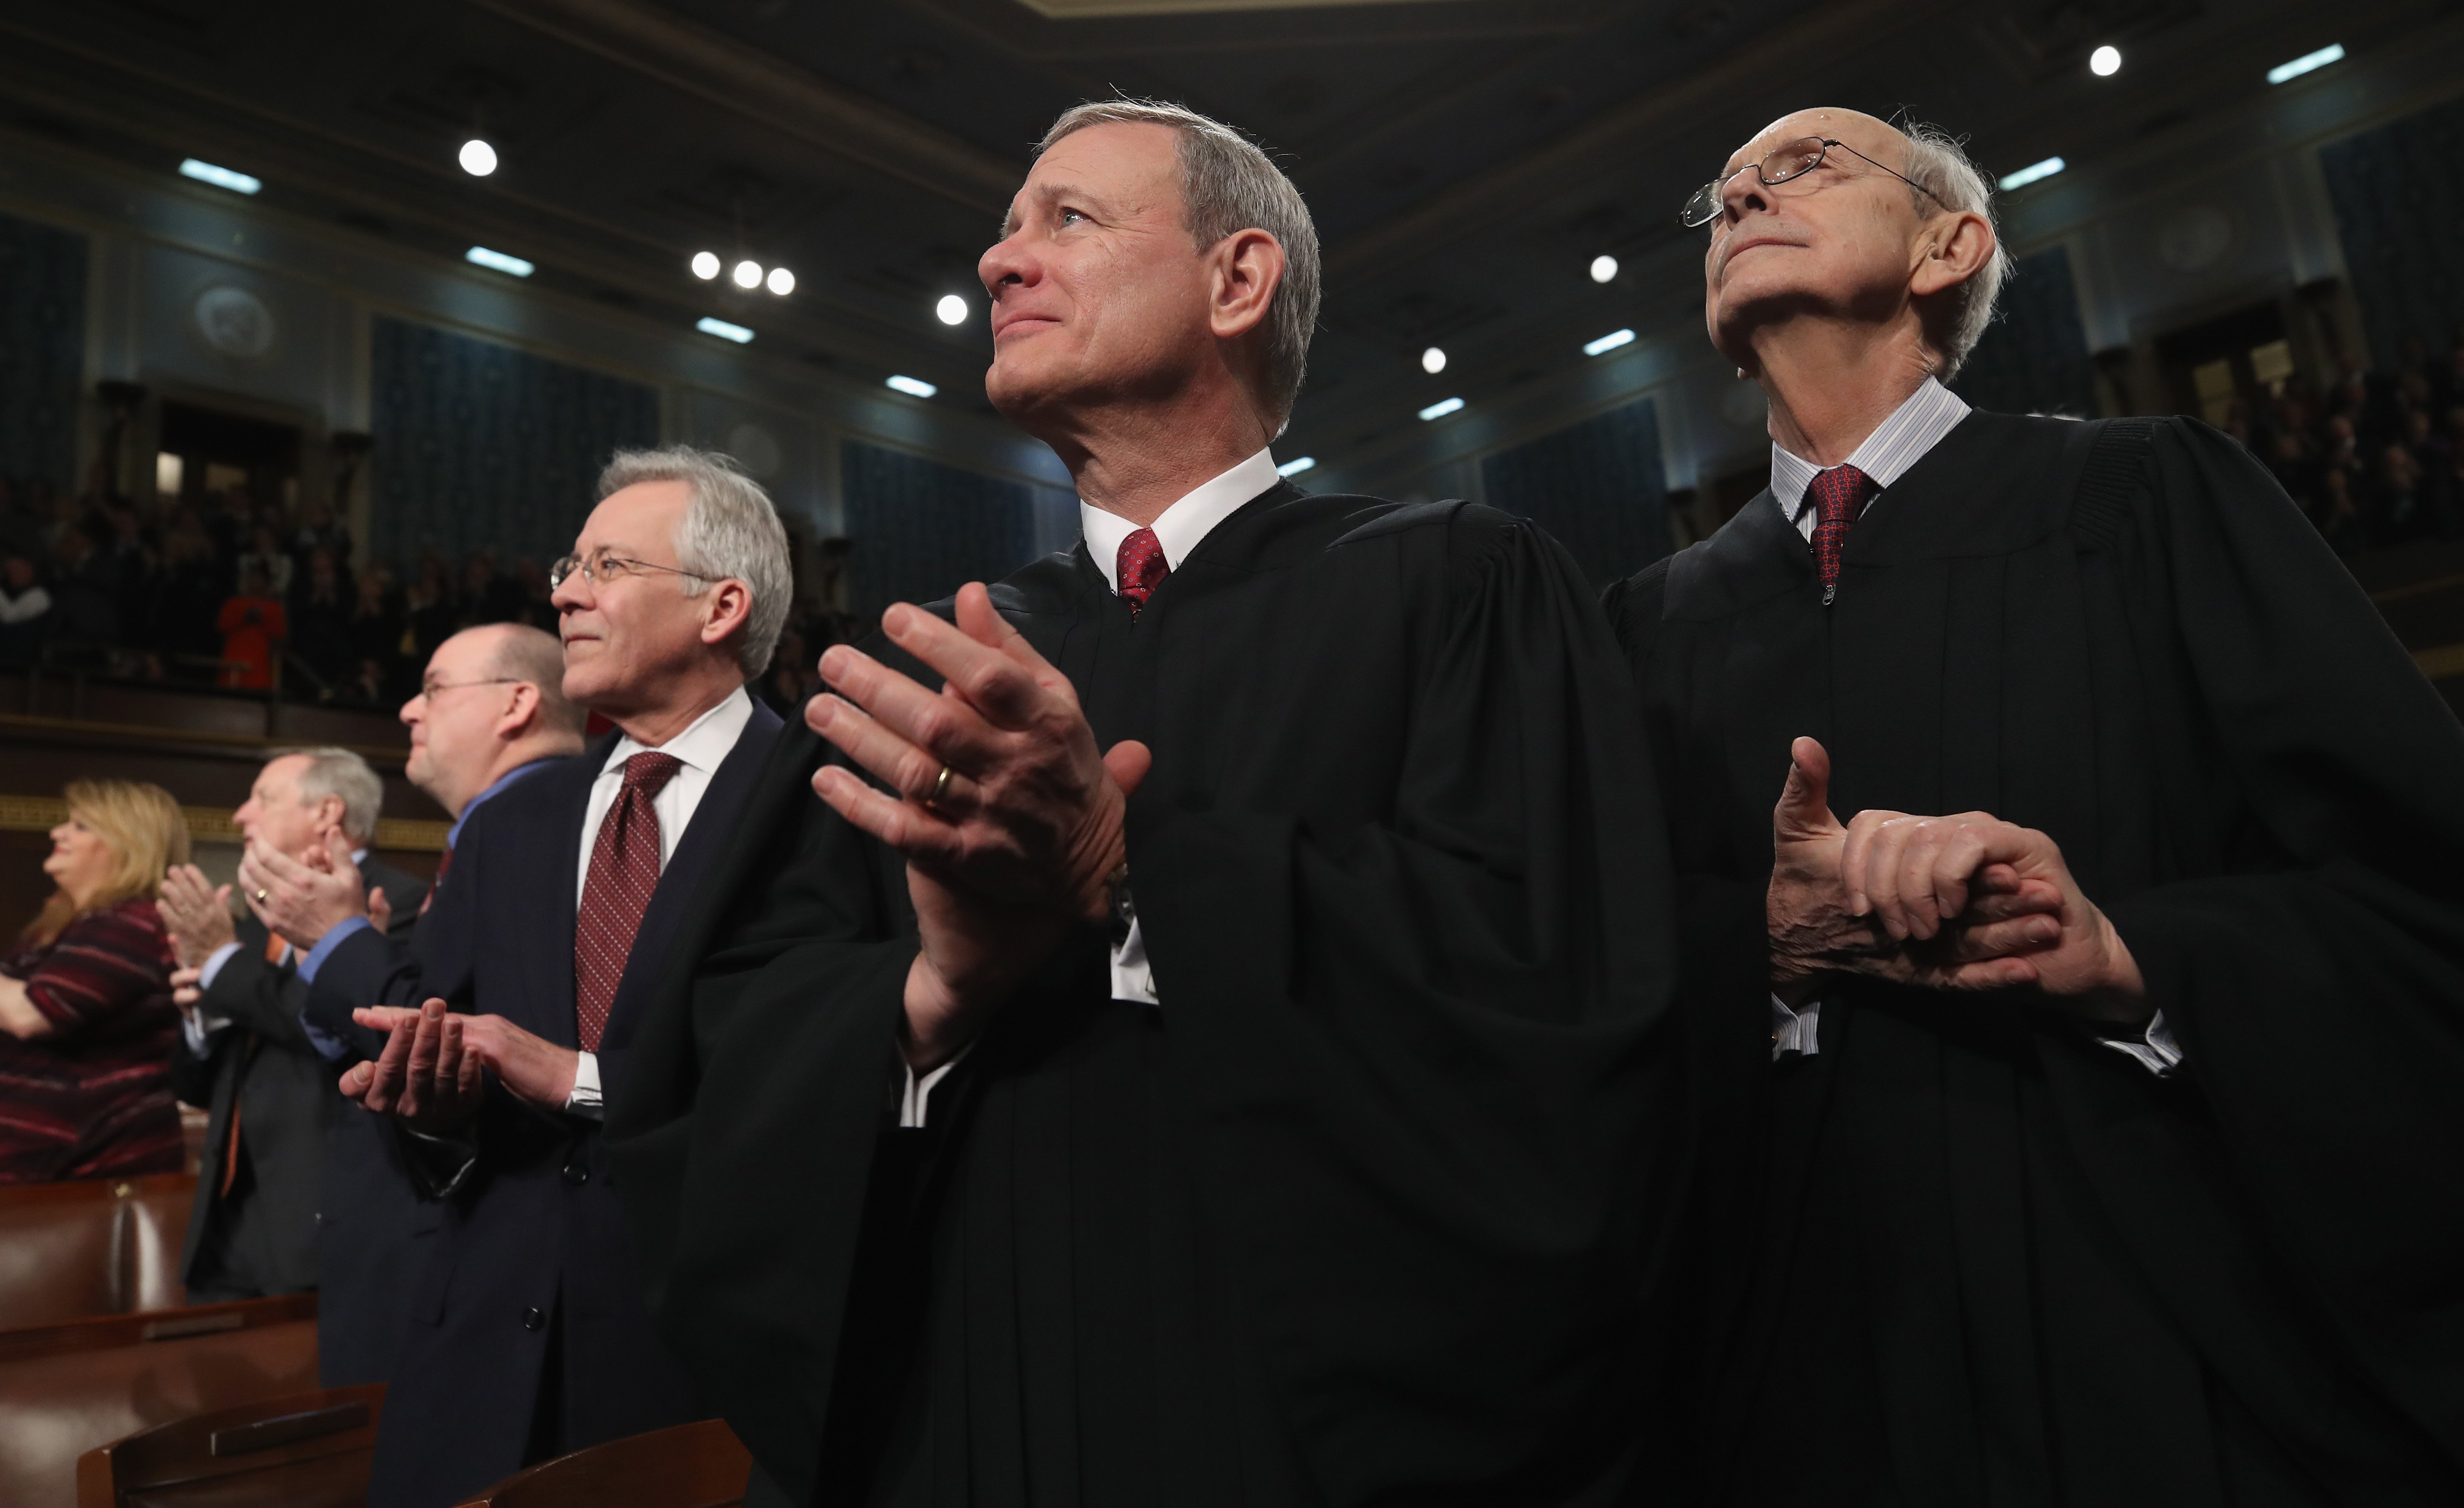 Chief Justice John G. Roberts watches the State of the Union address on January 30, 2018. (Win McNamee/Getty Images)